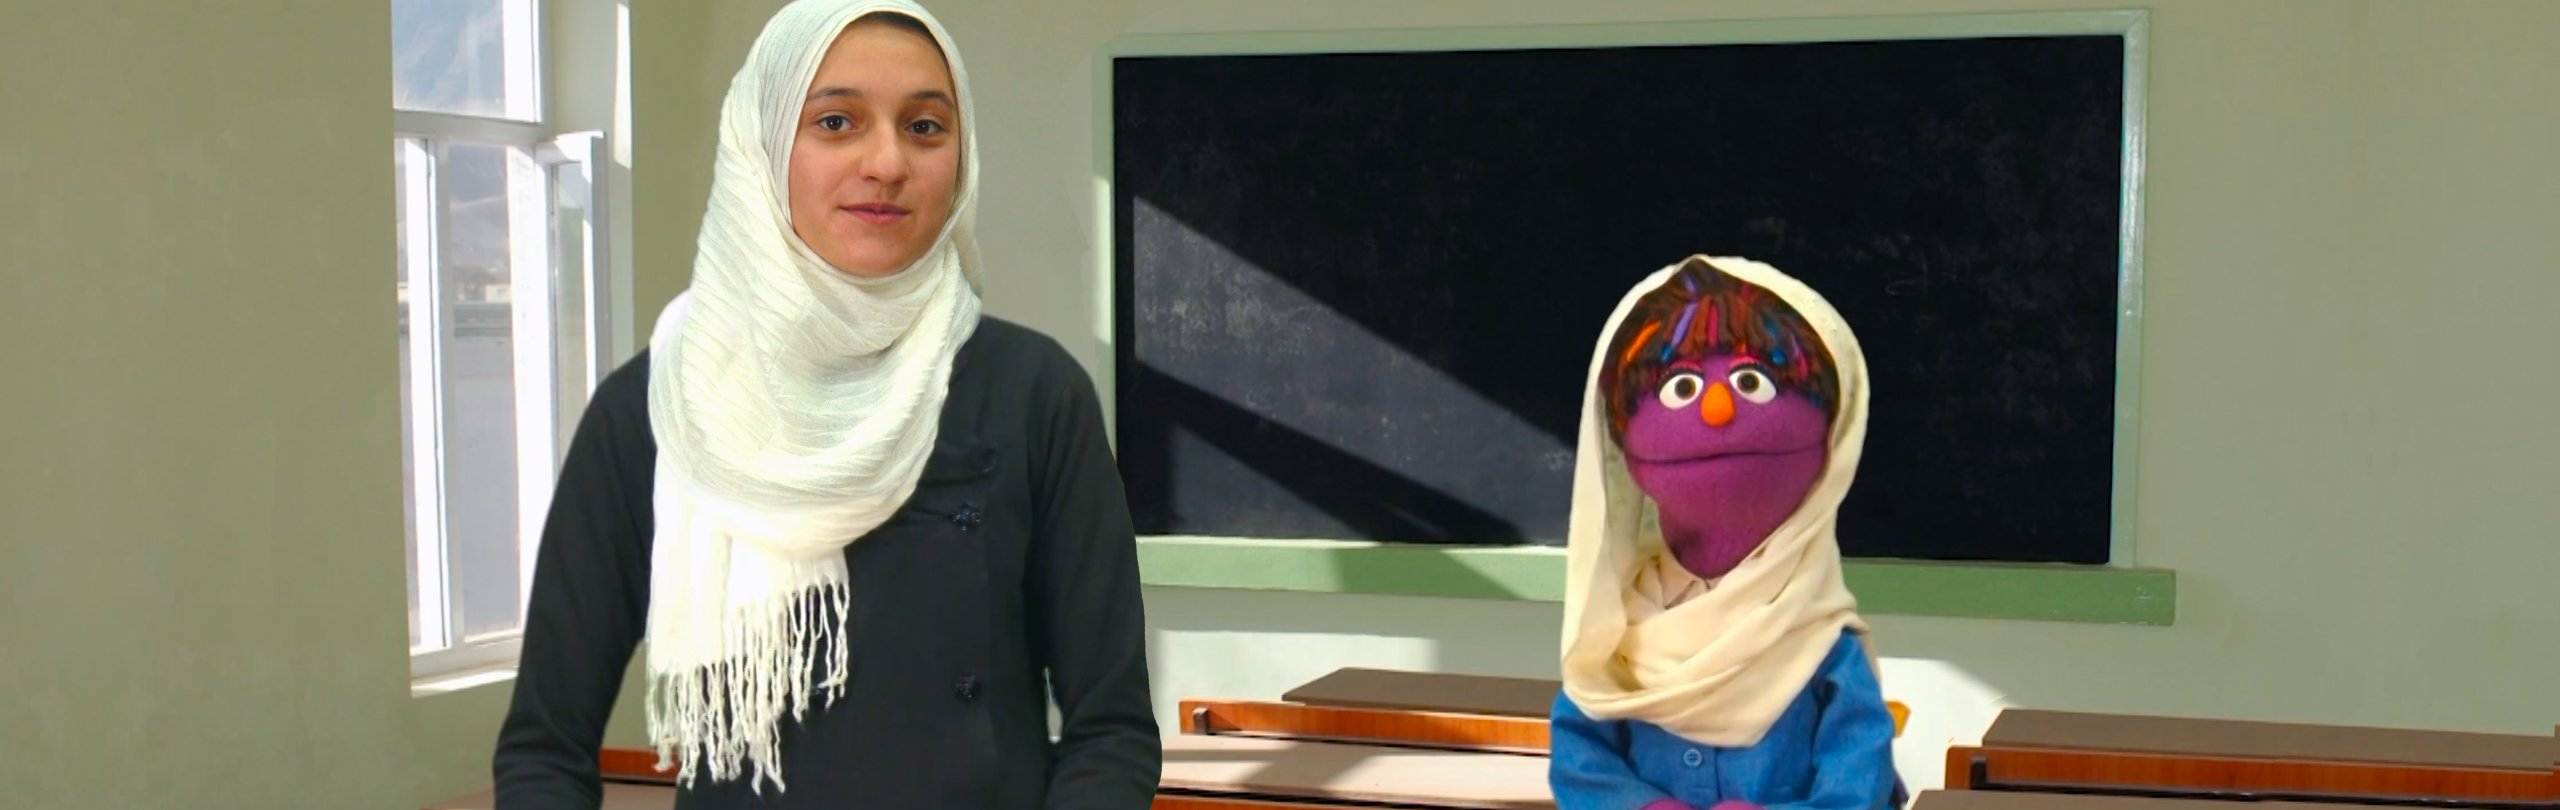 A purple female muppet and a young girl stand in front of a blackboard looking at the camera